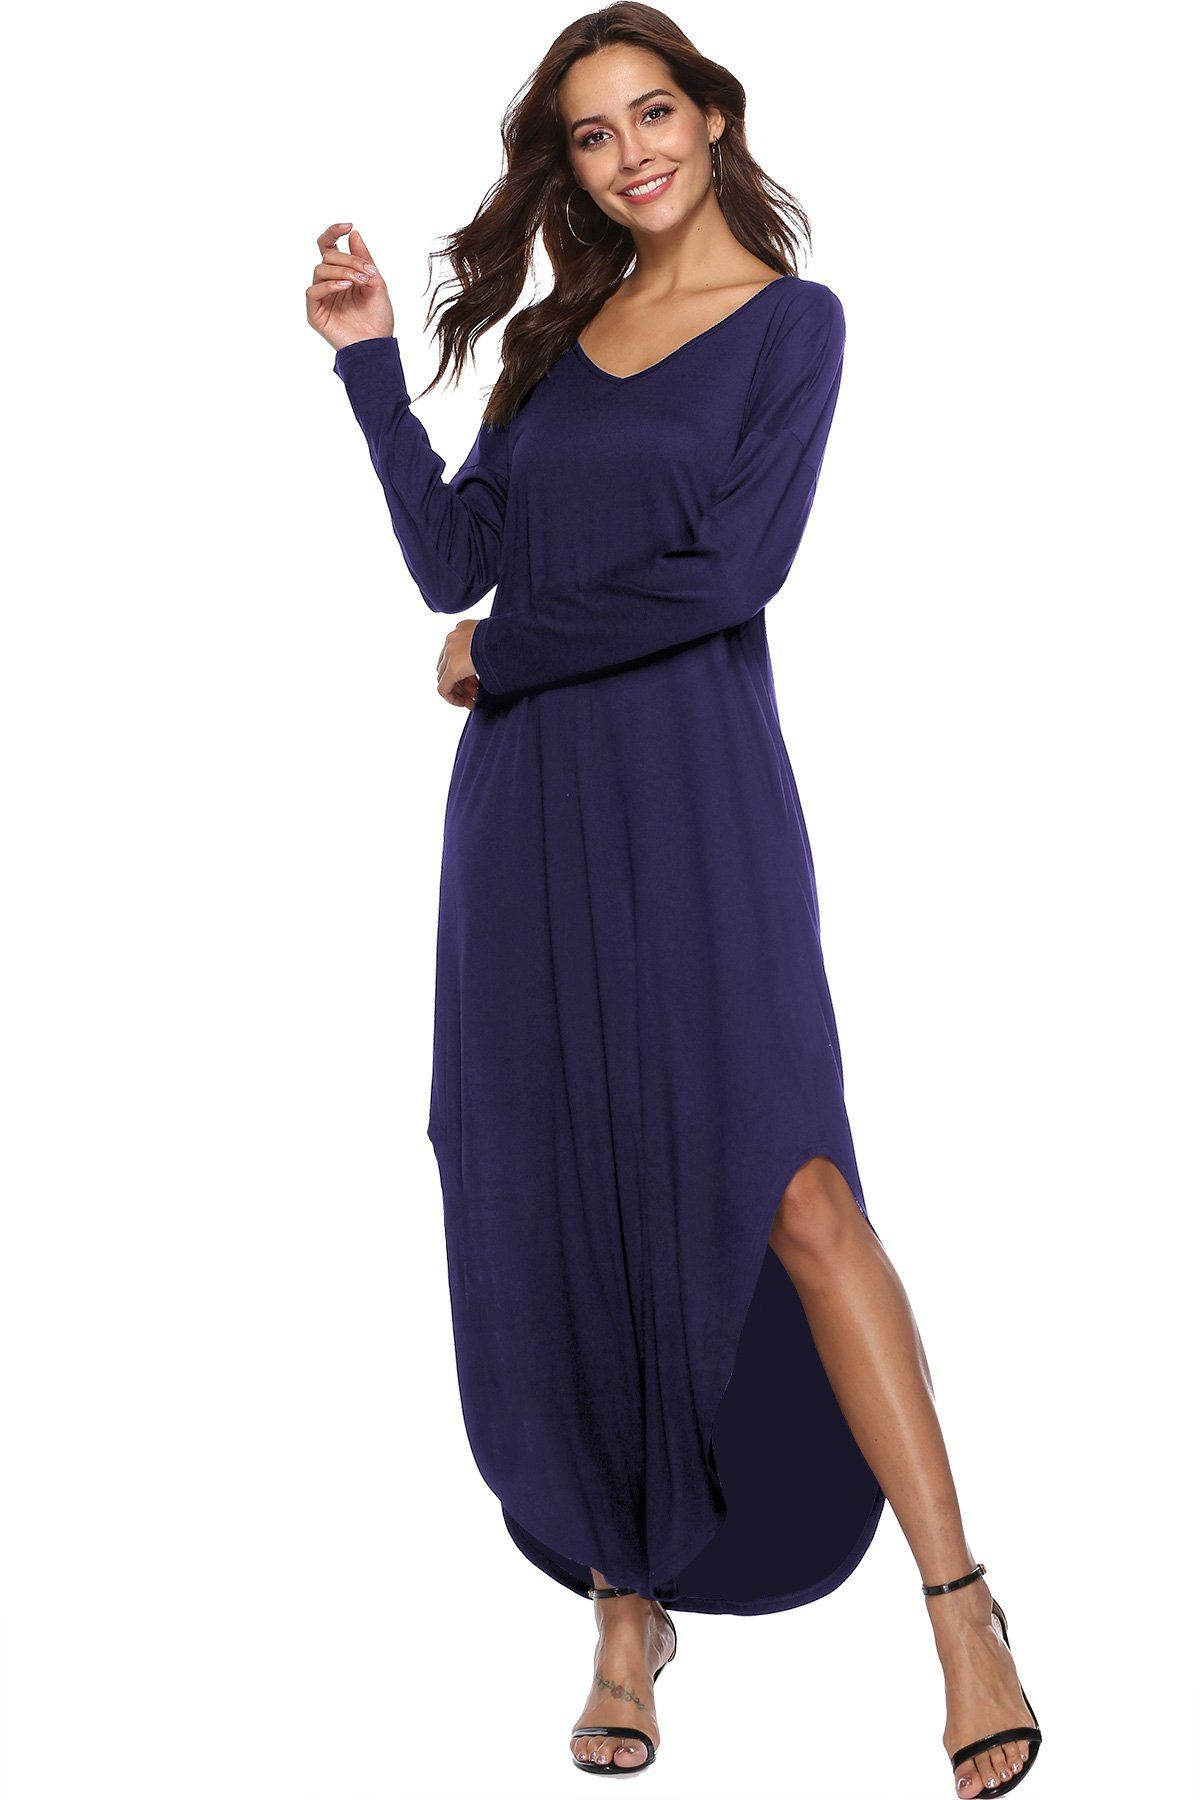 9f158bfb9a012 Women's Casual Long Sleeve Slit Solid Party Summer V-neck Long Maxi ...